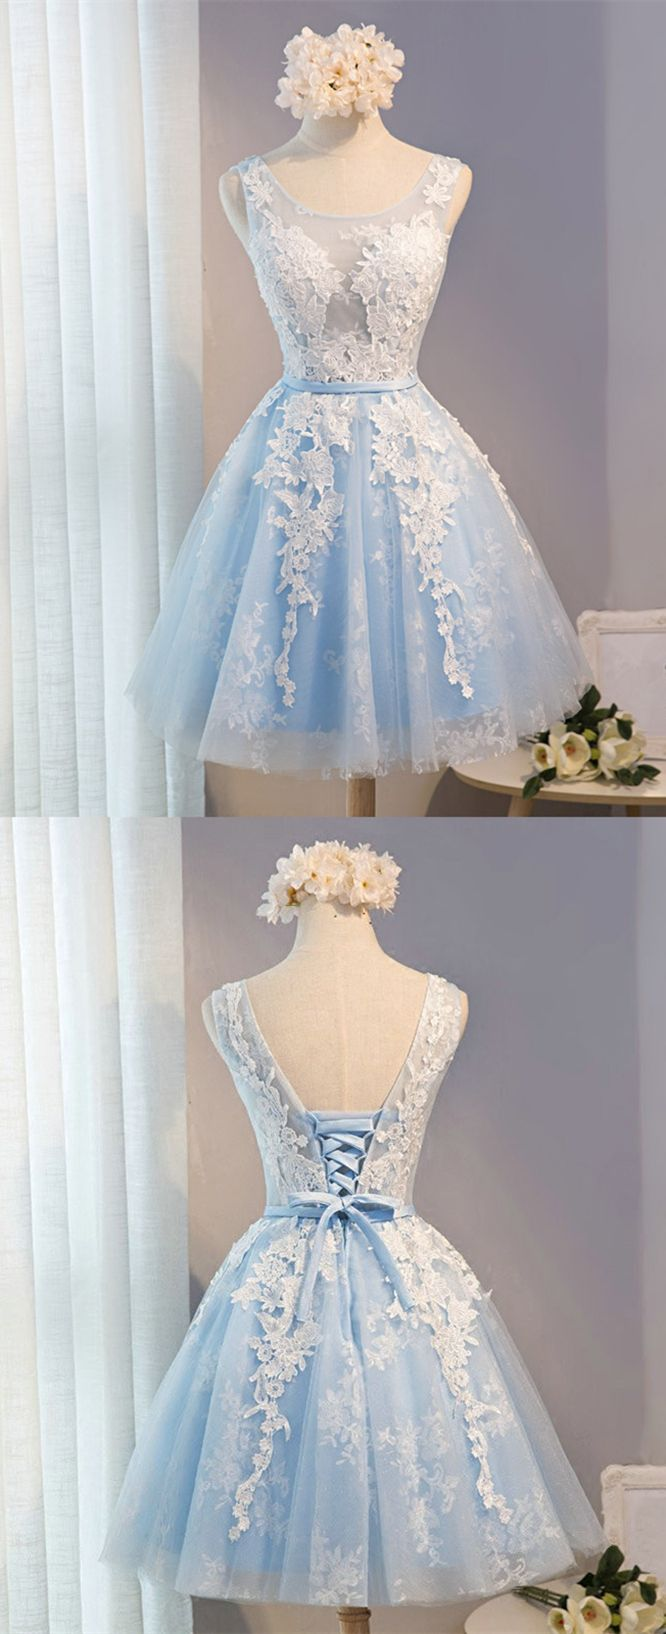 Aline scoop short light blue tulle homecoming dress with appliques